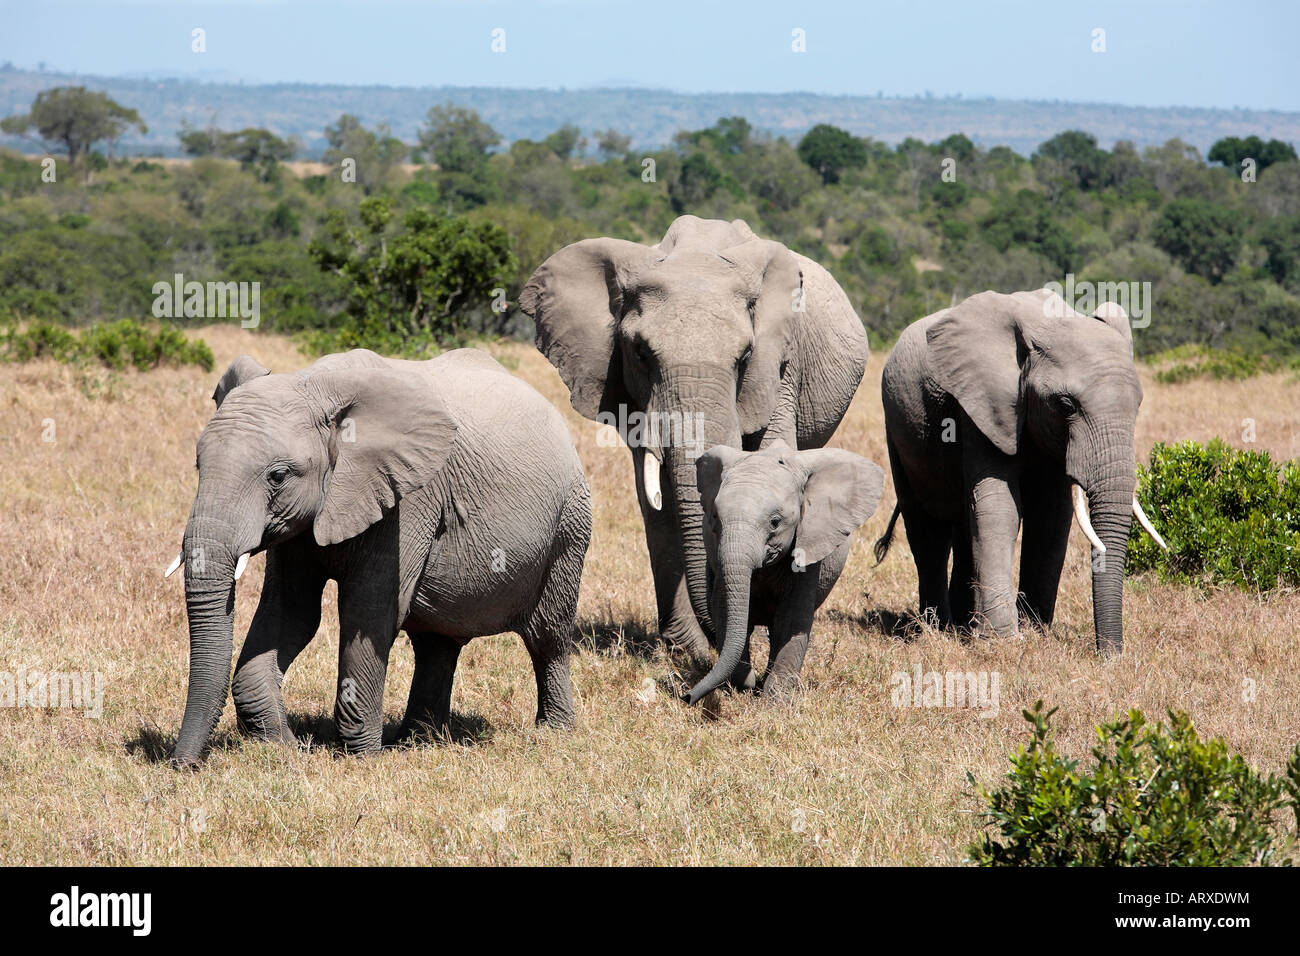 bunch of elephants, Elephantidae, in the bush of the masai reserve in kenya africa - Stock Image